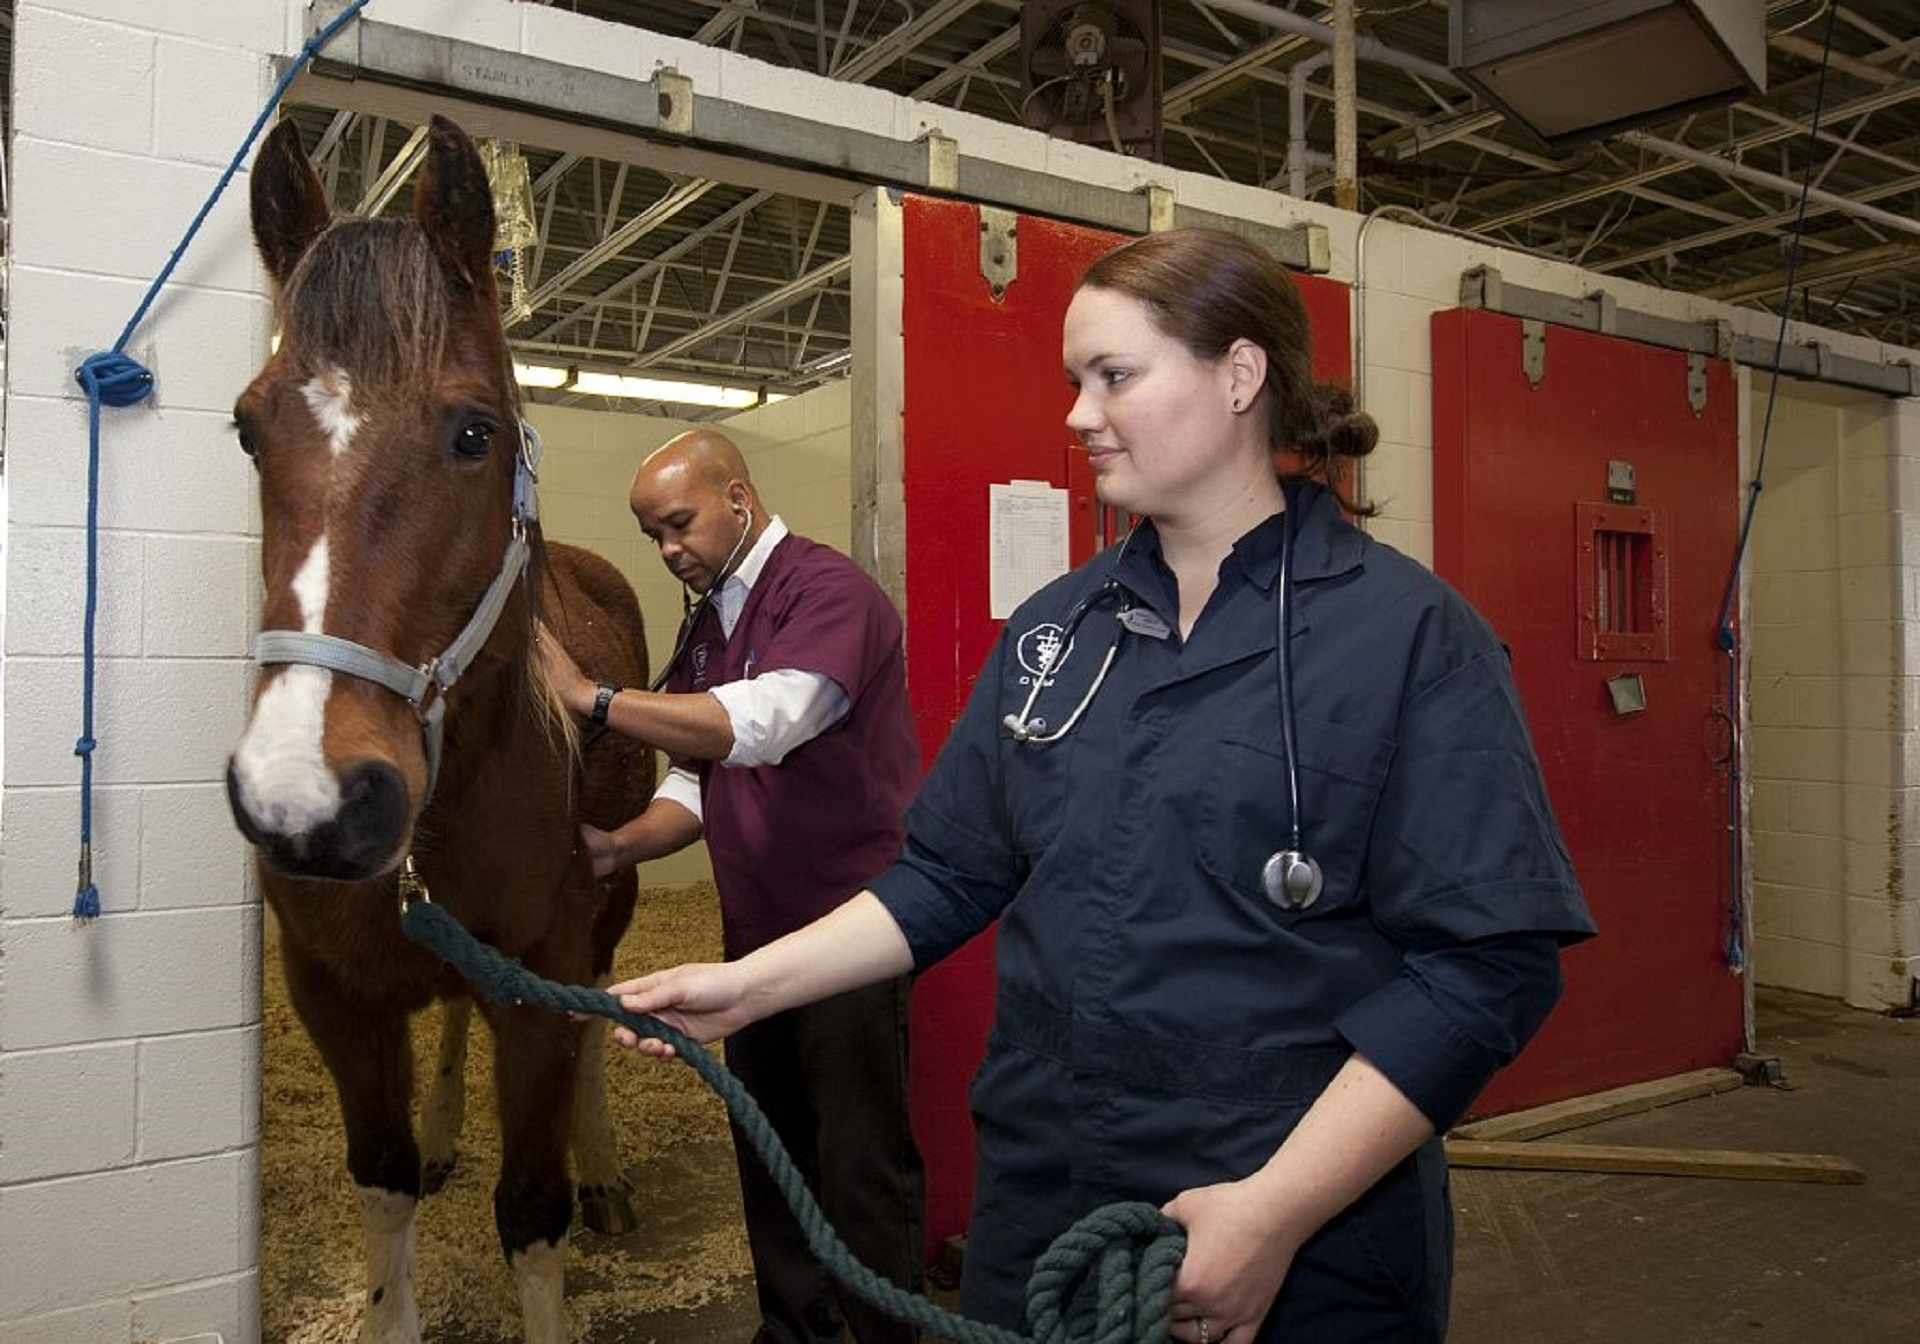 Veterinarian Doctor, Activity, Animal, Doc, Doctor, HQ Photo